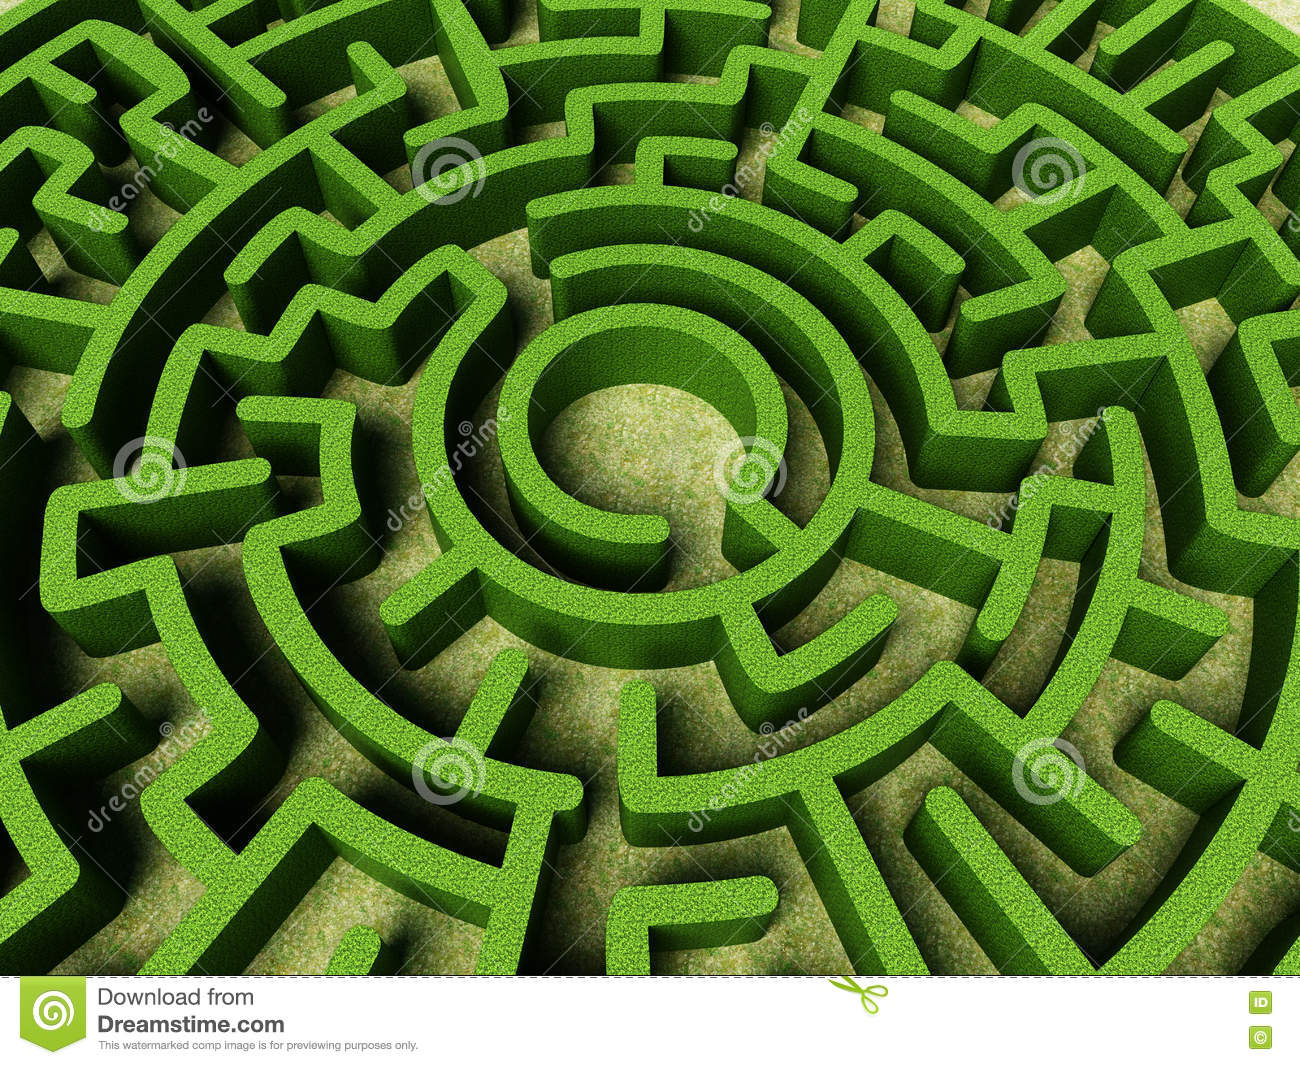 Round garden maze with green bushes as walls stock for Jardin laberinto